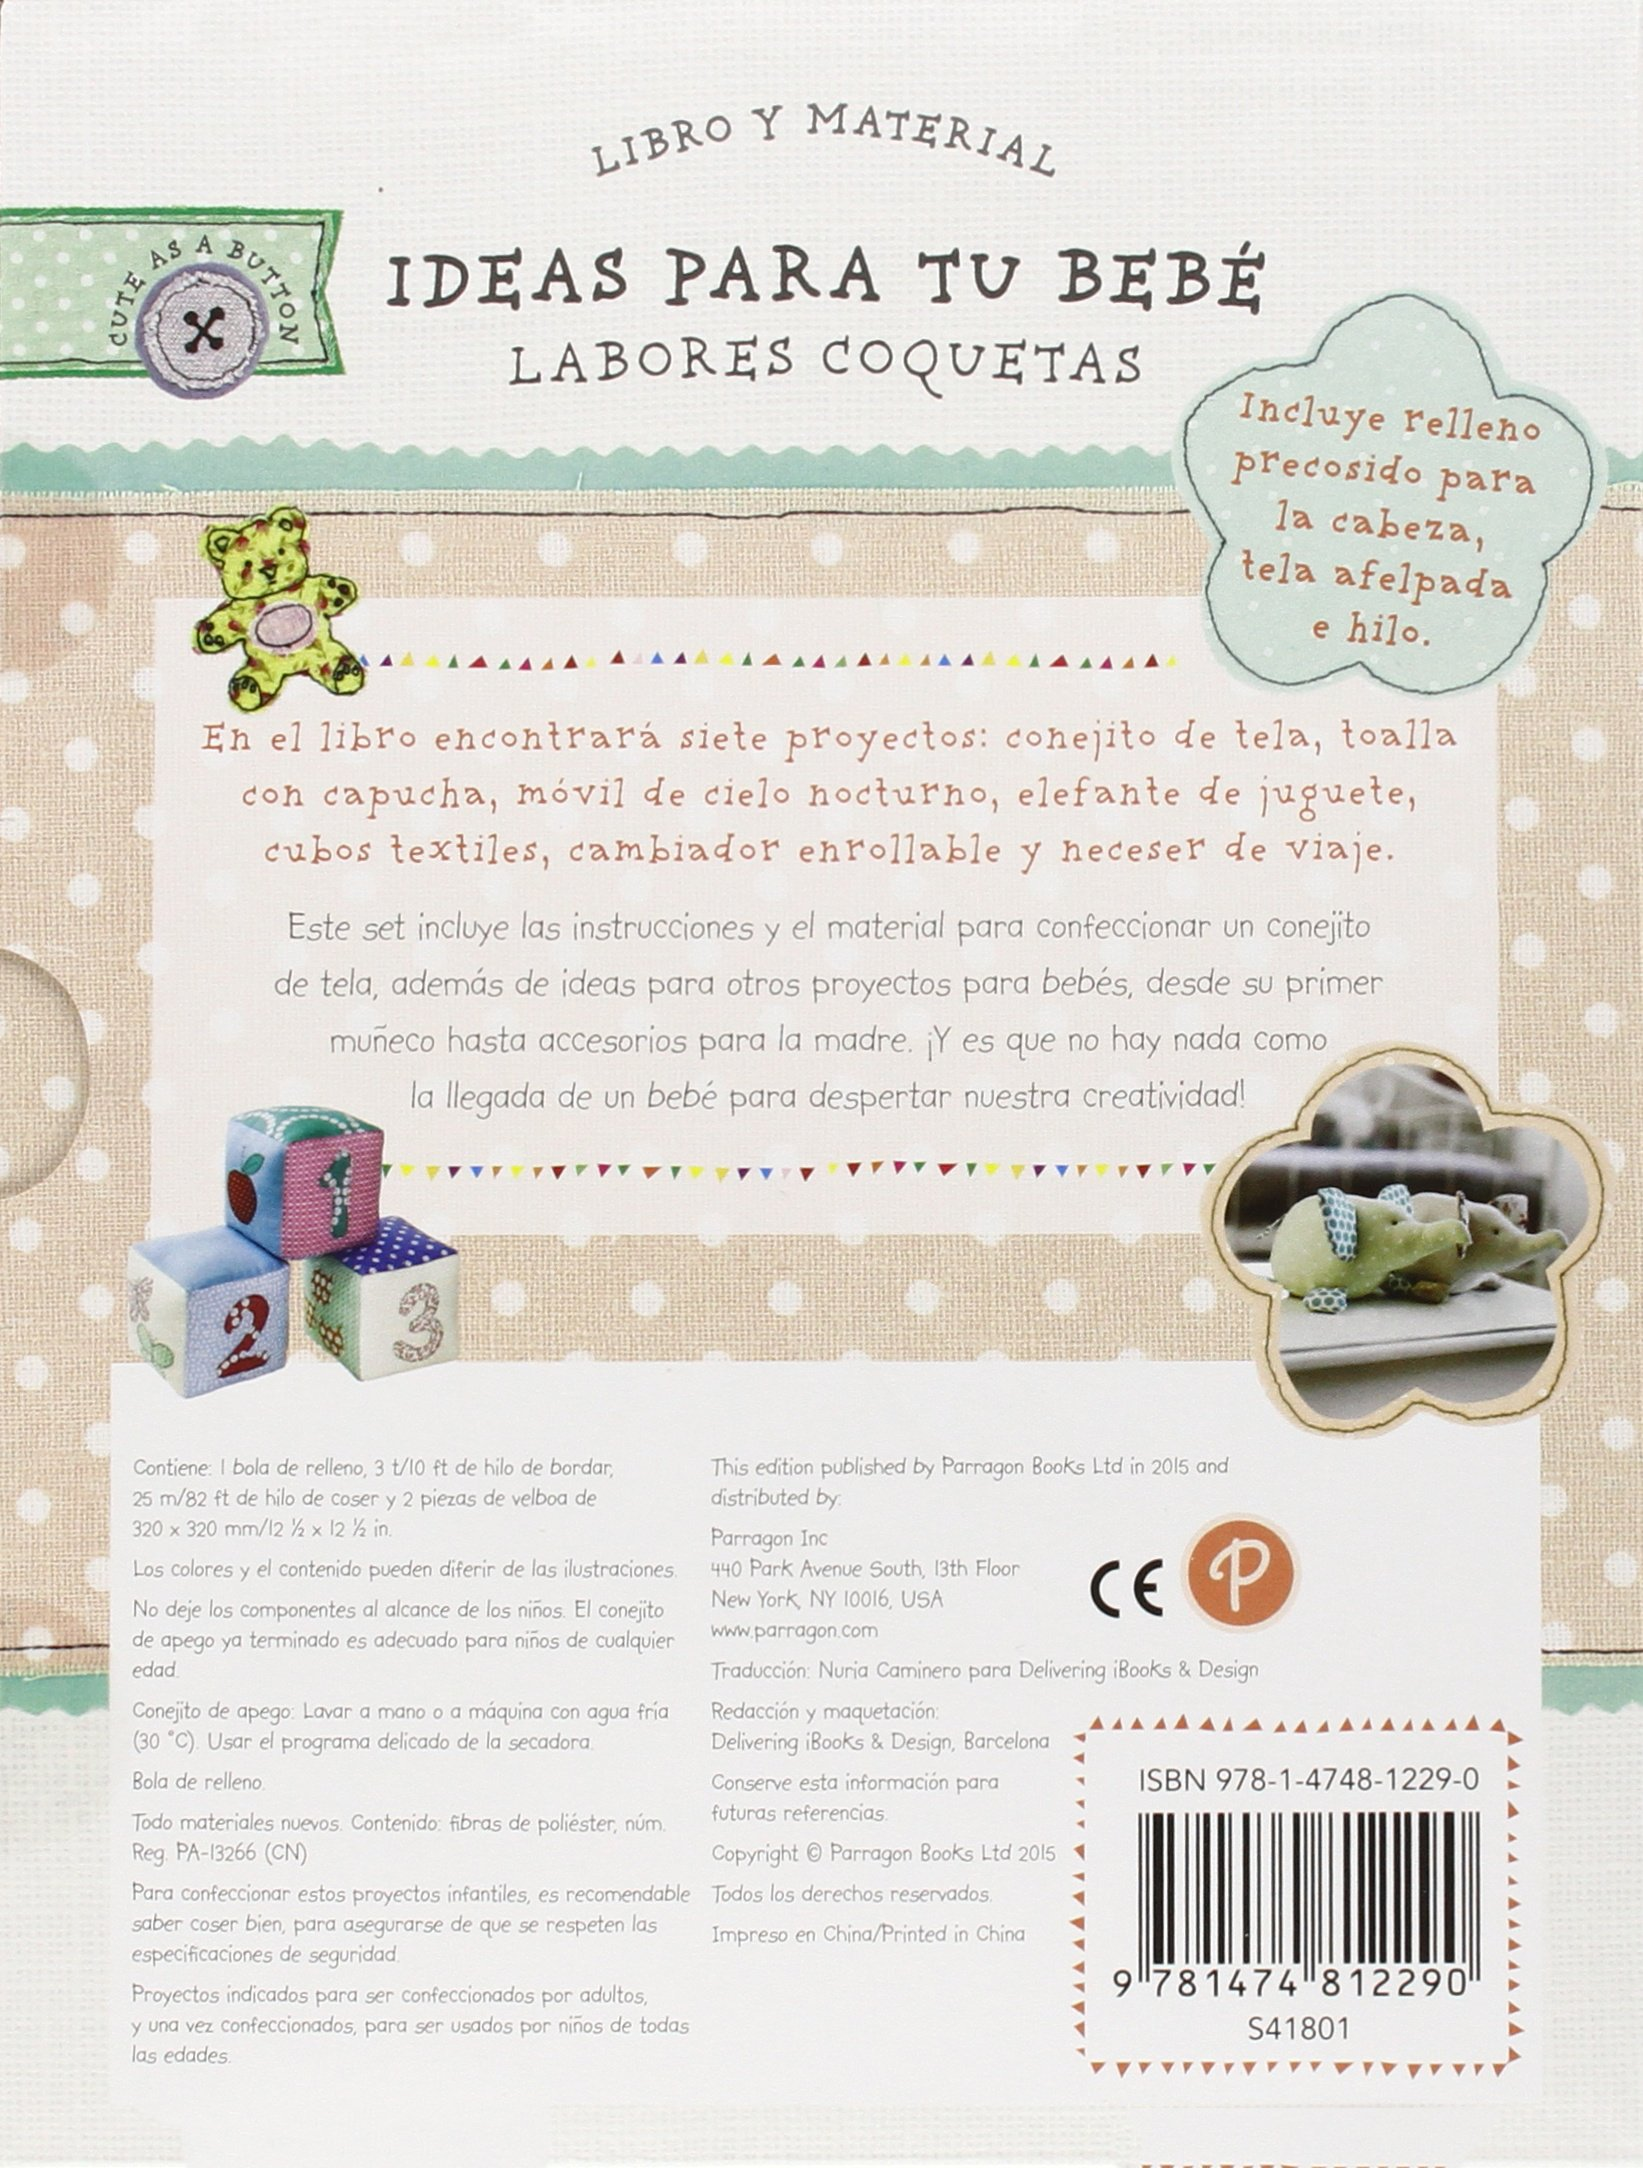 IDEAS PARA TU BEBE- LABORES COQUETAS-SET: 9781474812290: Amazon.com: Books